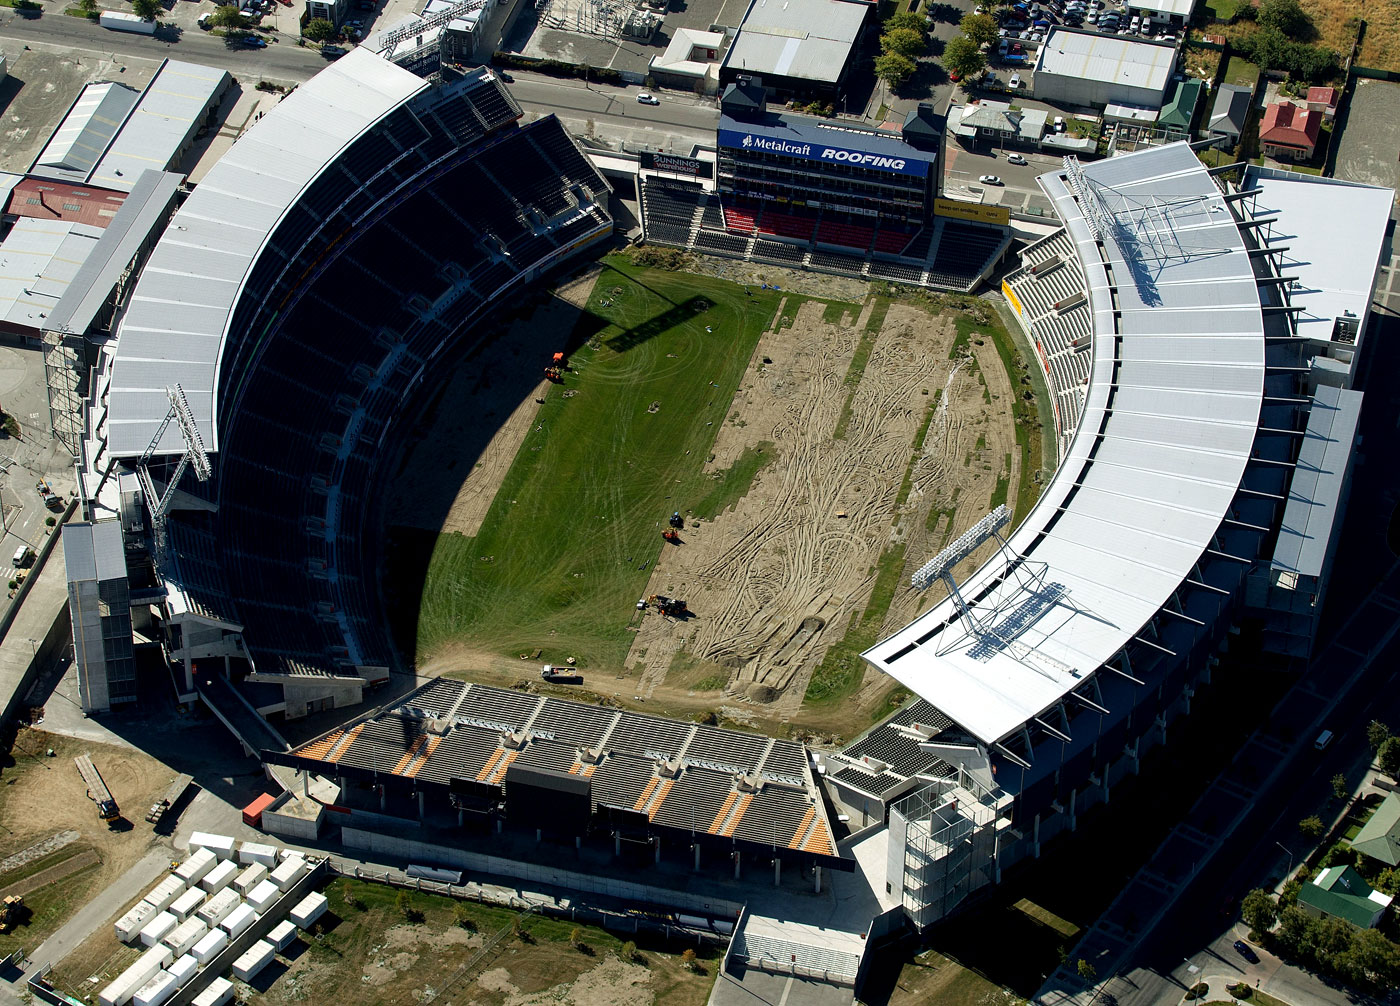 Lancaster Park, hit hard by the earthquake, wasn't all that viable for cricket even before the damage